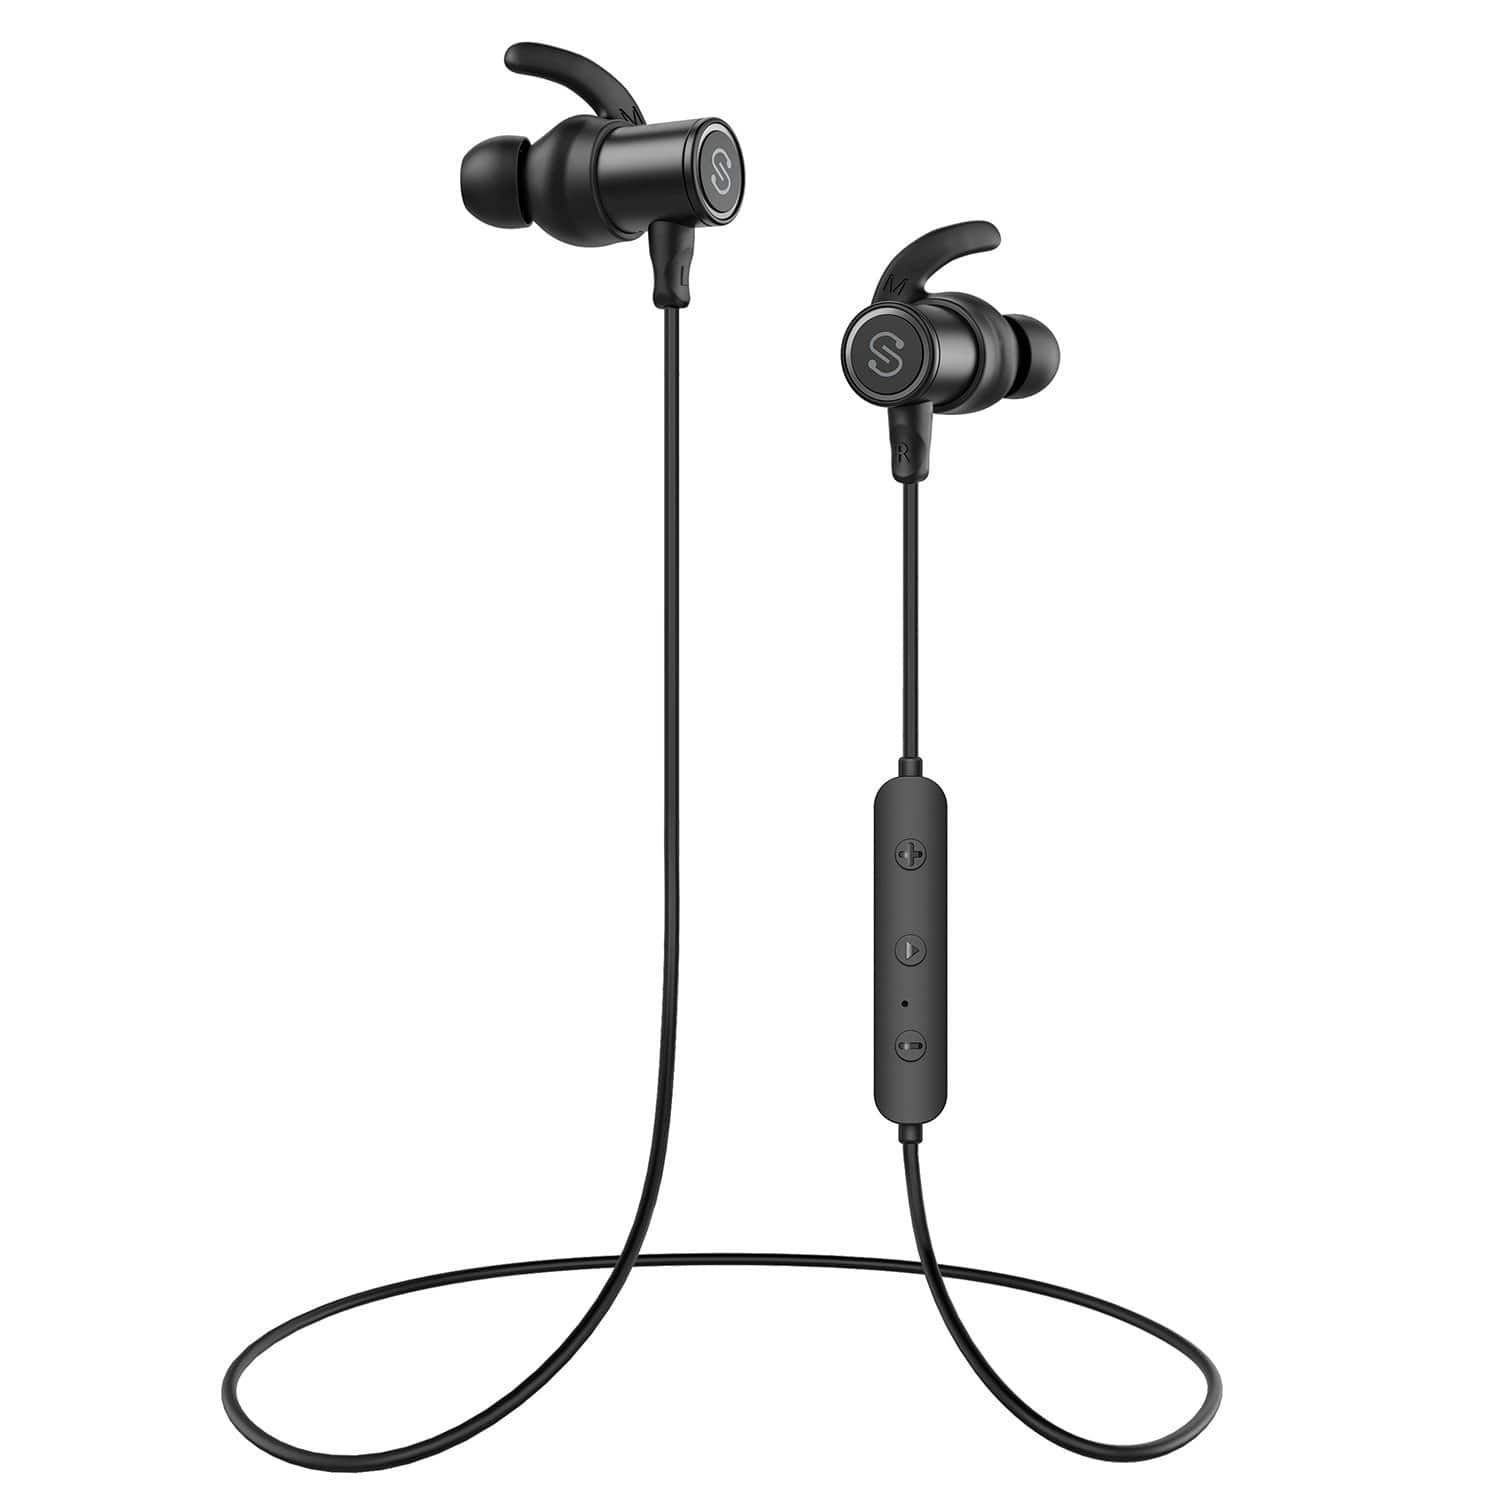 SoundPEATS Magnetic Wireless Bluetooth In-Ear Earphones with Built-in Mic and 8 Hours Battery $19.13 + Free S/H